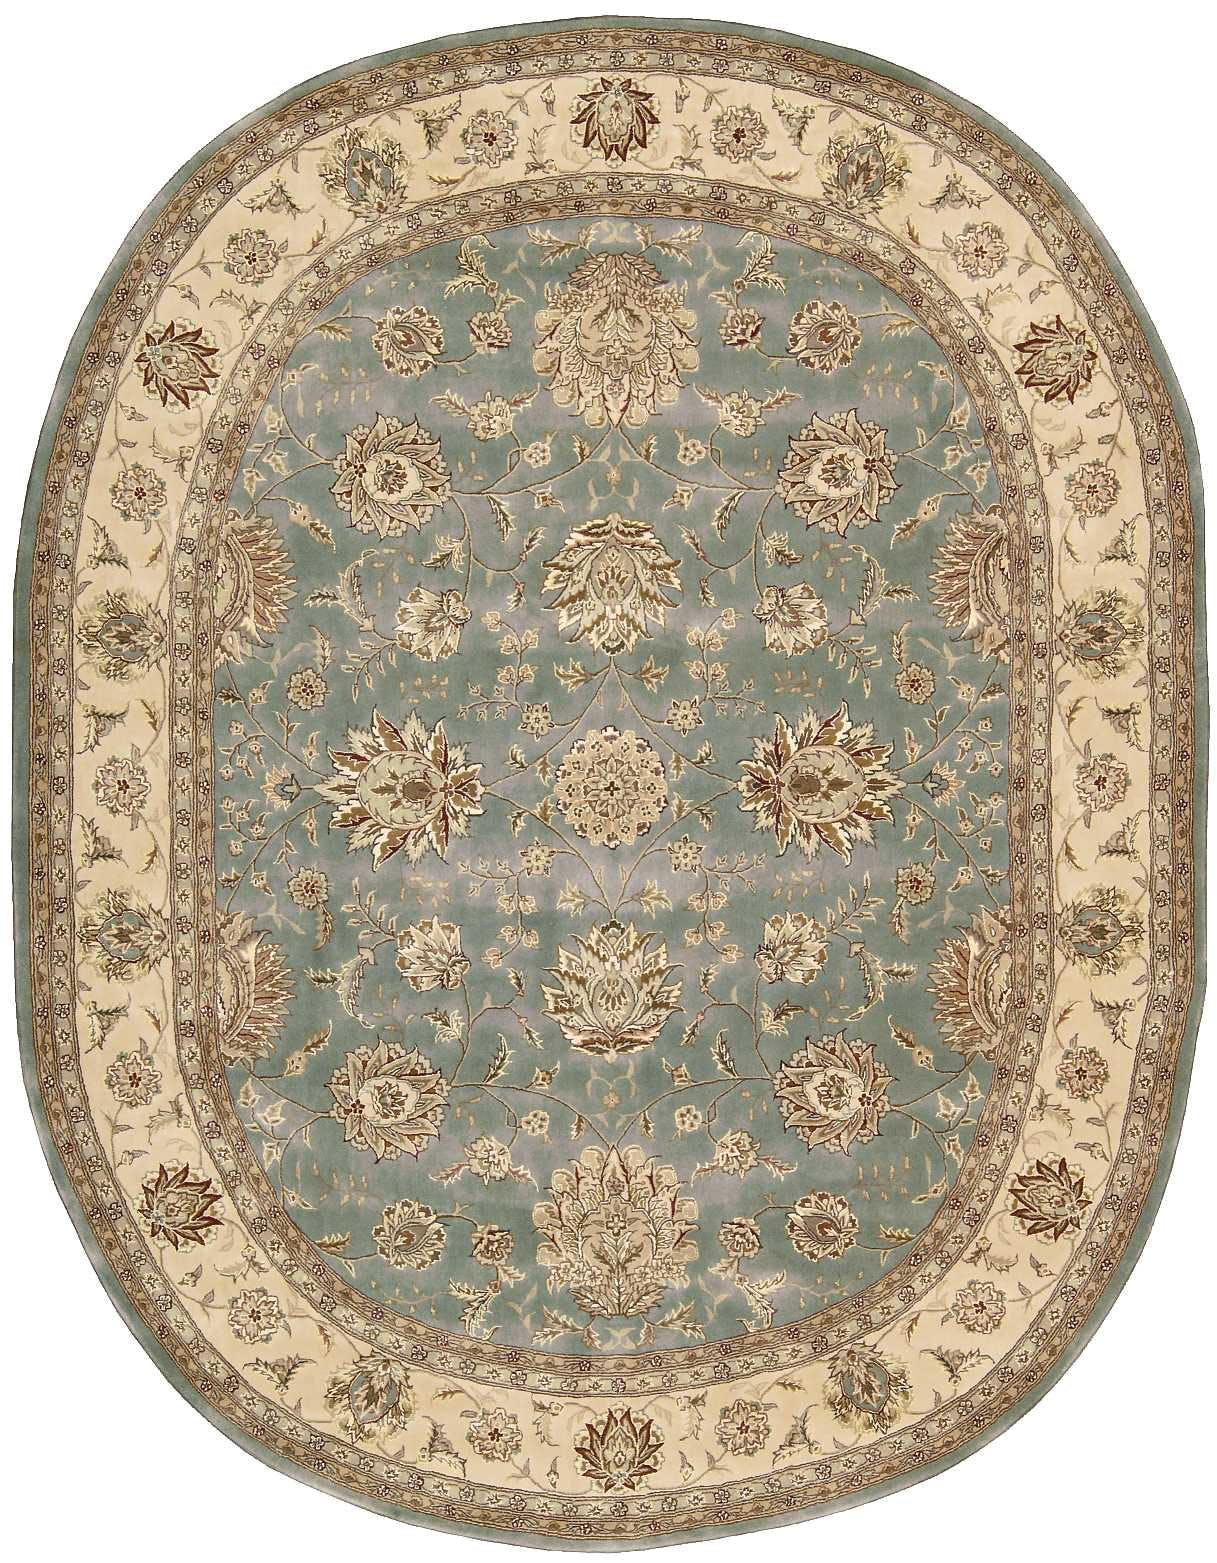 Image of: Nourison Floor Coverings 2000 2210 Blue 10 Oval Area Rug 099446593696 Aminis